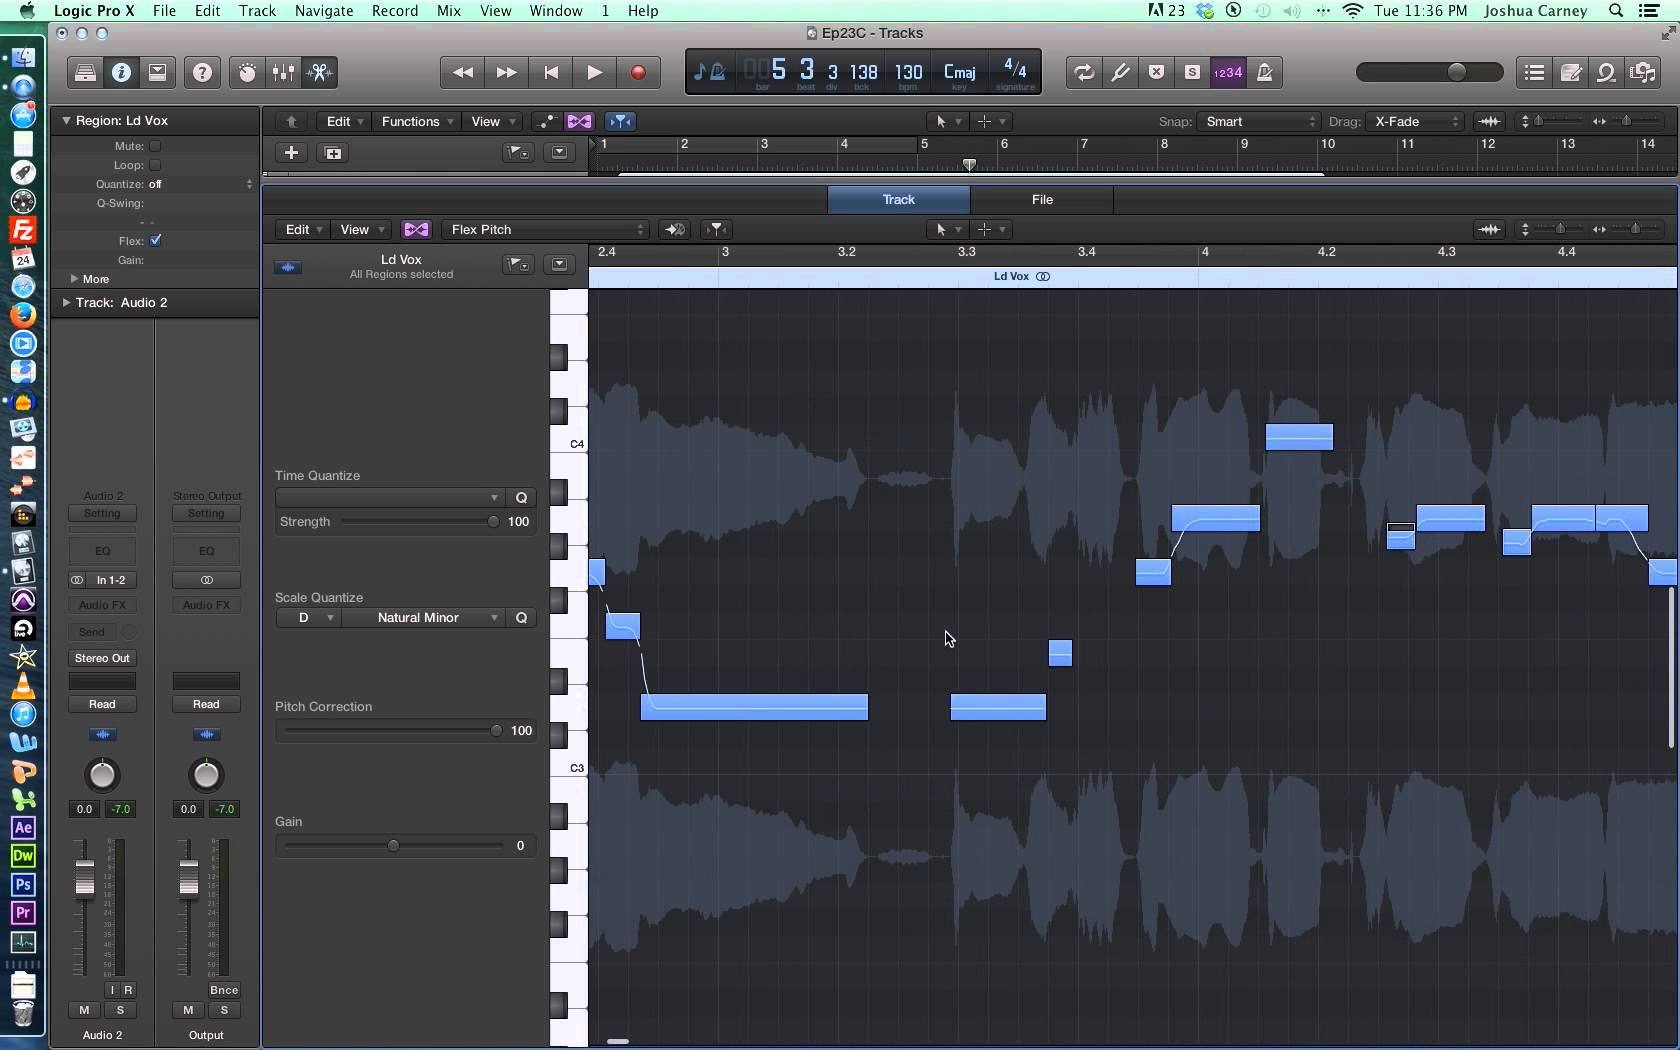 cc9ce4b1be05a1e0b3e507777314bcee - How To Get Good Vocals In Logic Pro X